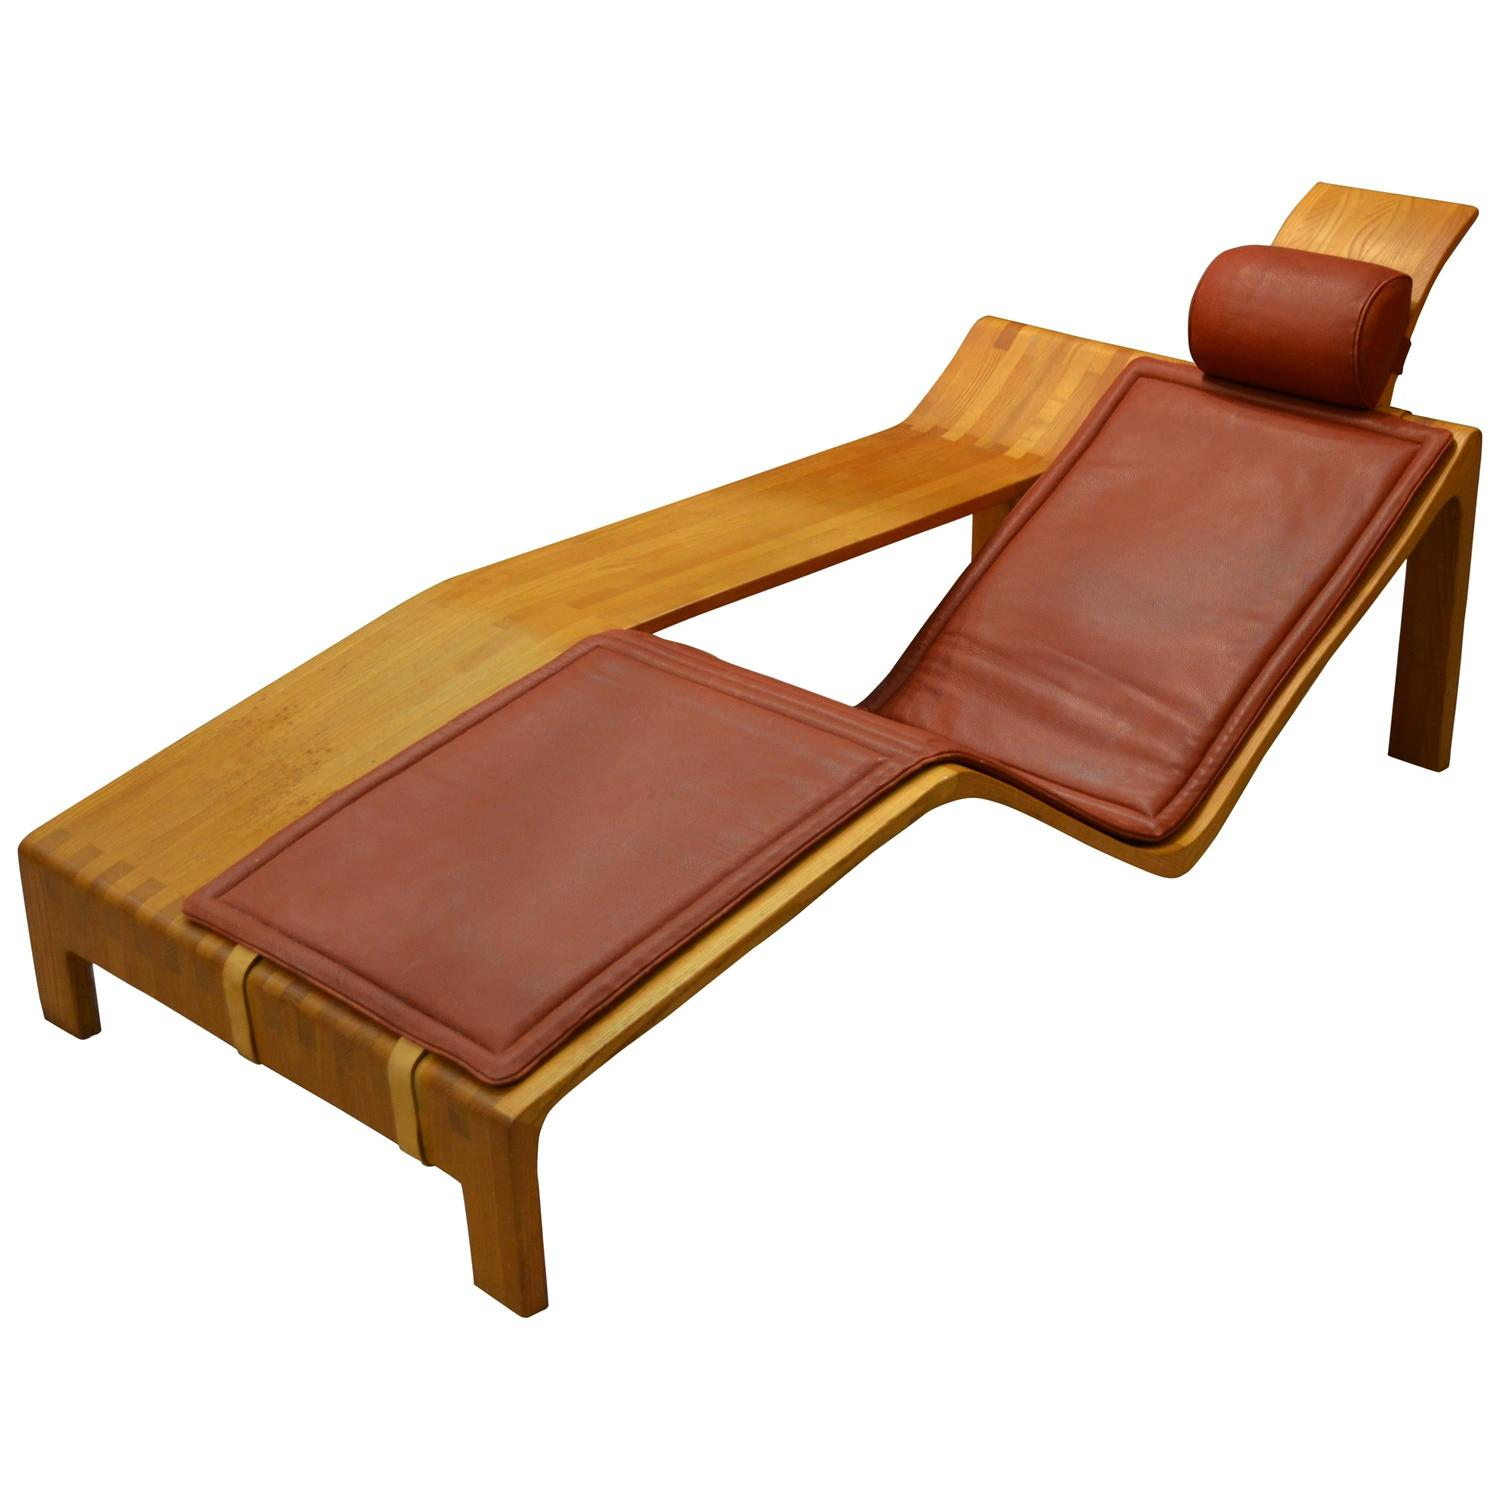 Chaise by engmose for sale at 1stdibs for Chaise longue roche bobois